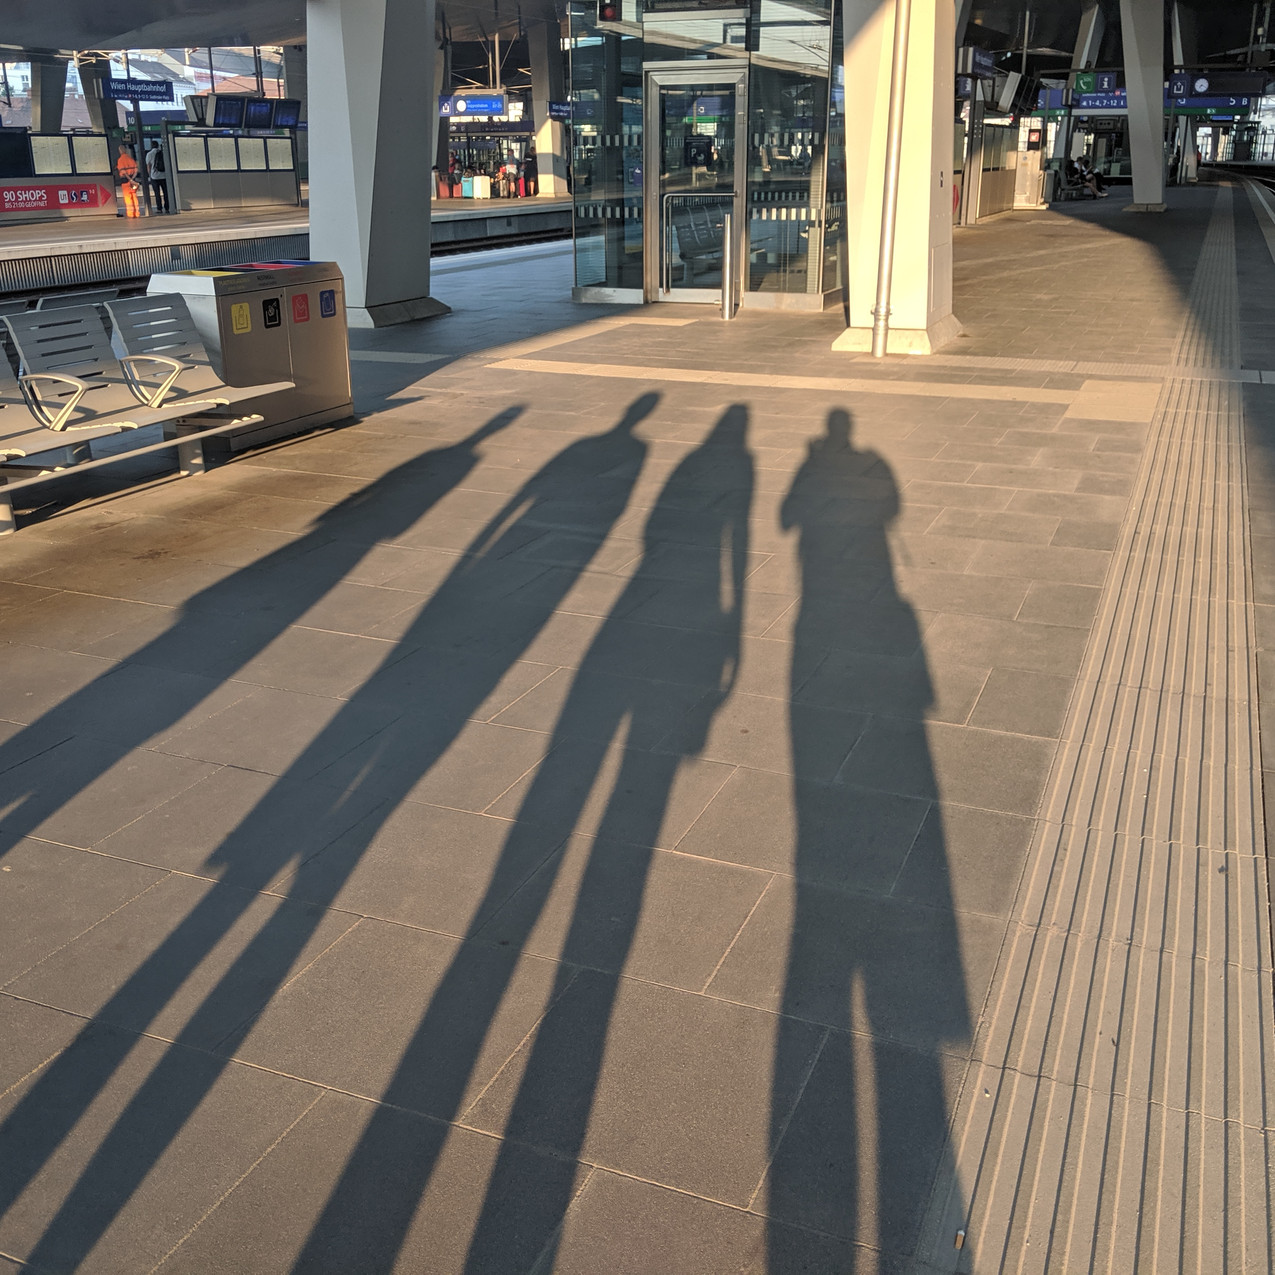 Photo of our four shadows on the sidewalk at a train station.